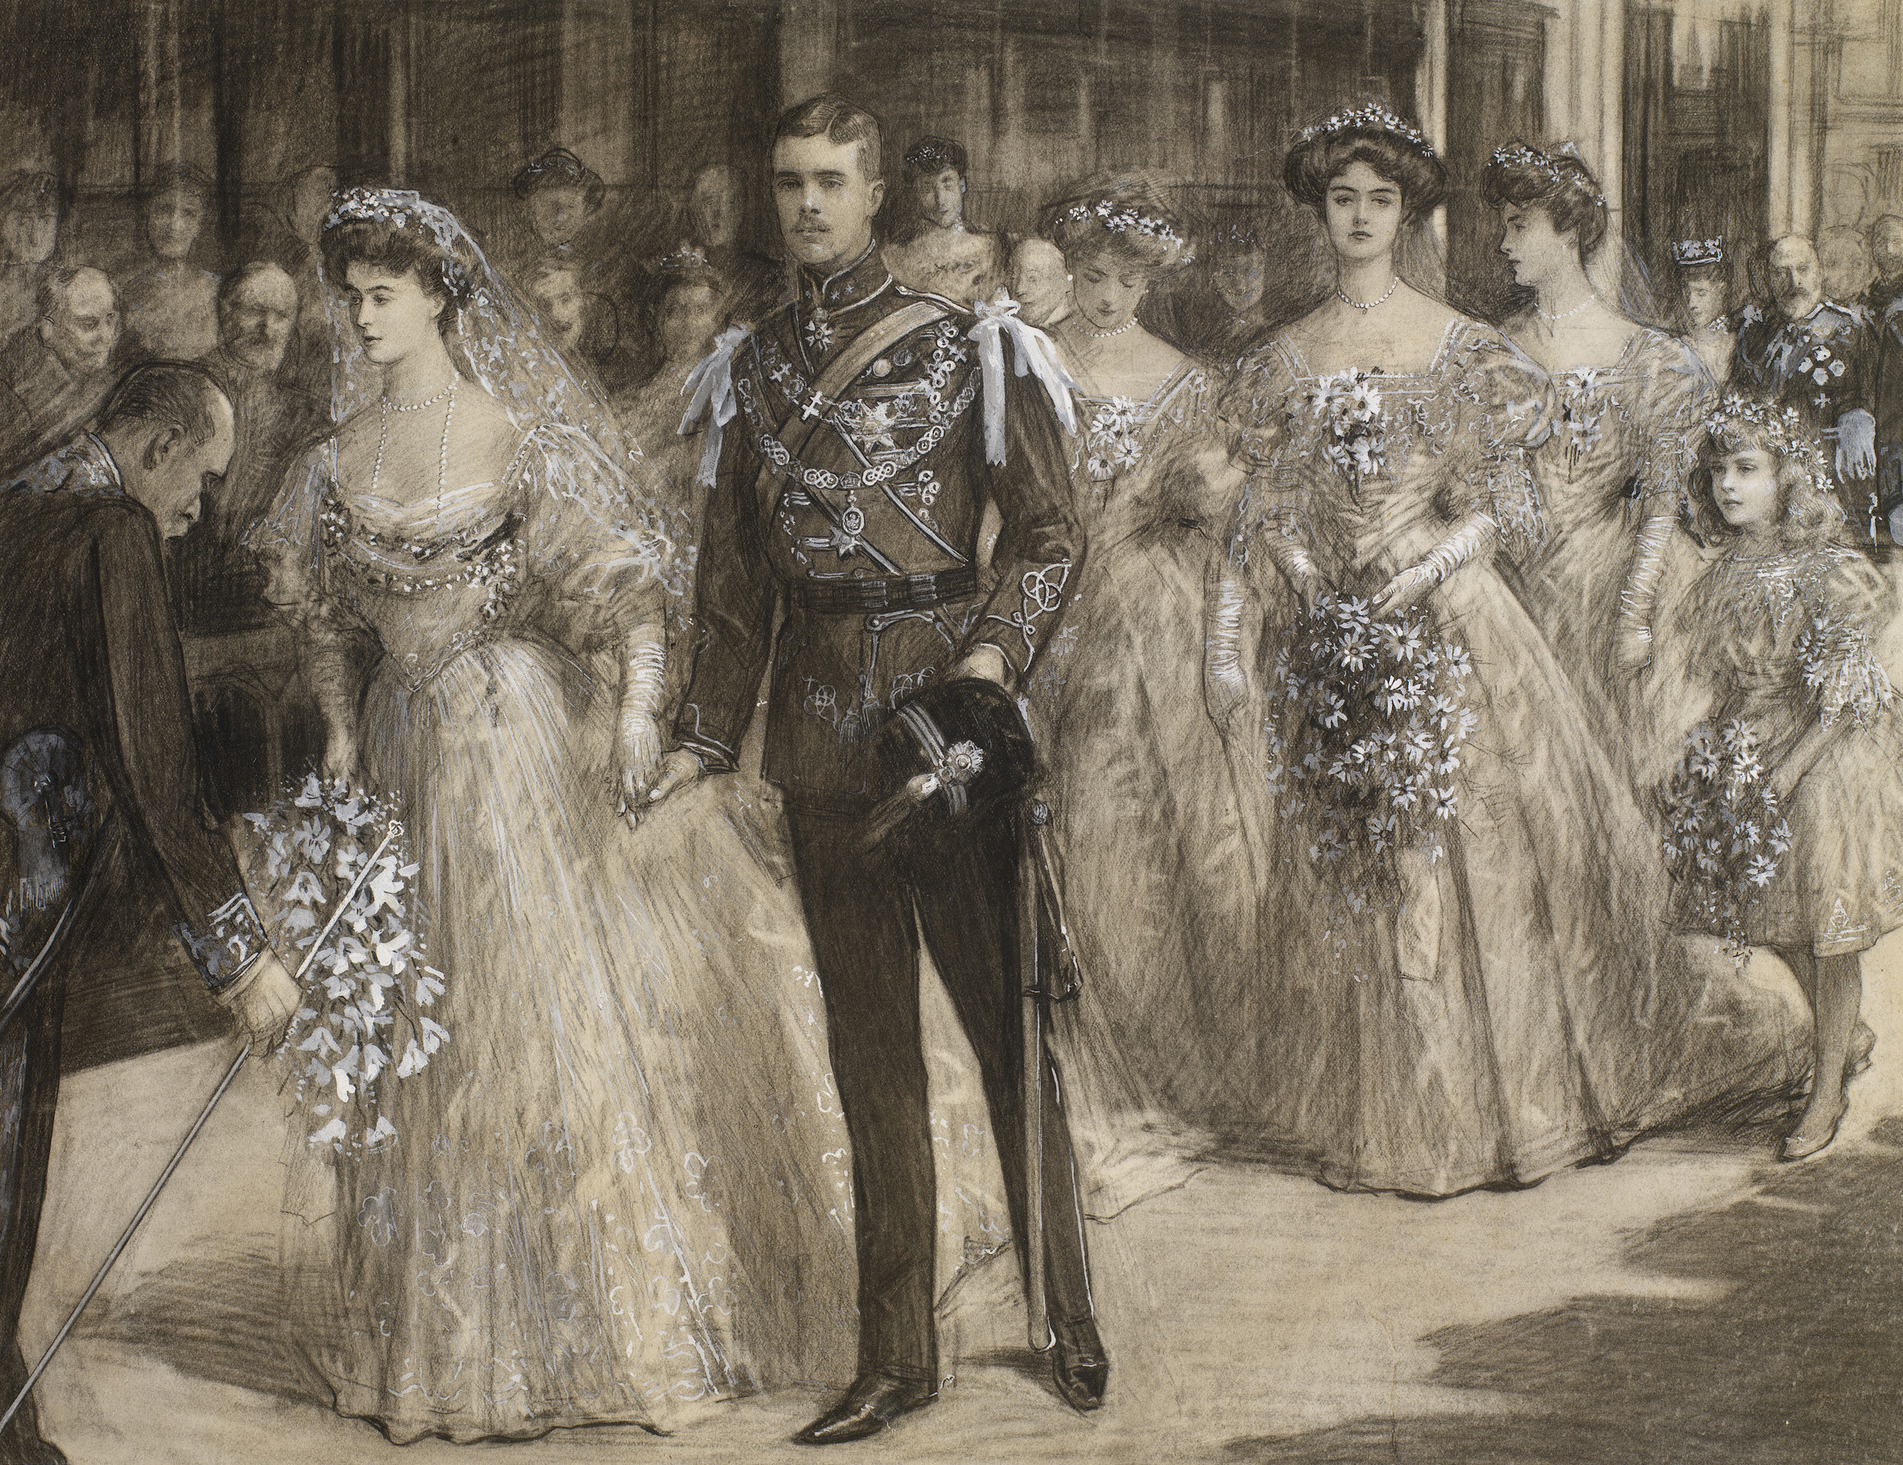 The marriage of The Princess Margaret of Connaught and The Crown Prince of Sweden and Norway at St George's Chapel on 15 June 1905. Royal Collection Trust/© Her Majesty Queen Elizabeth II 2018